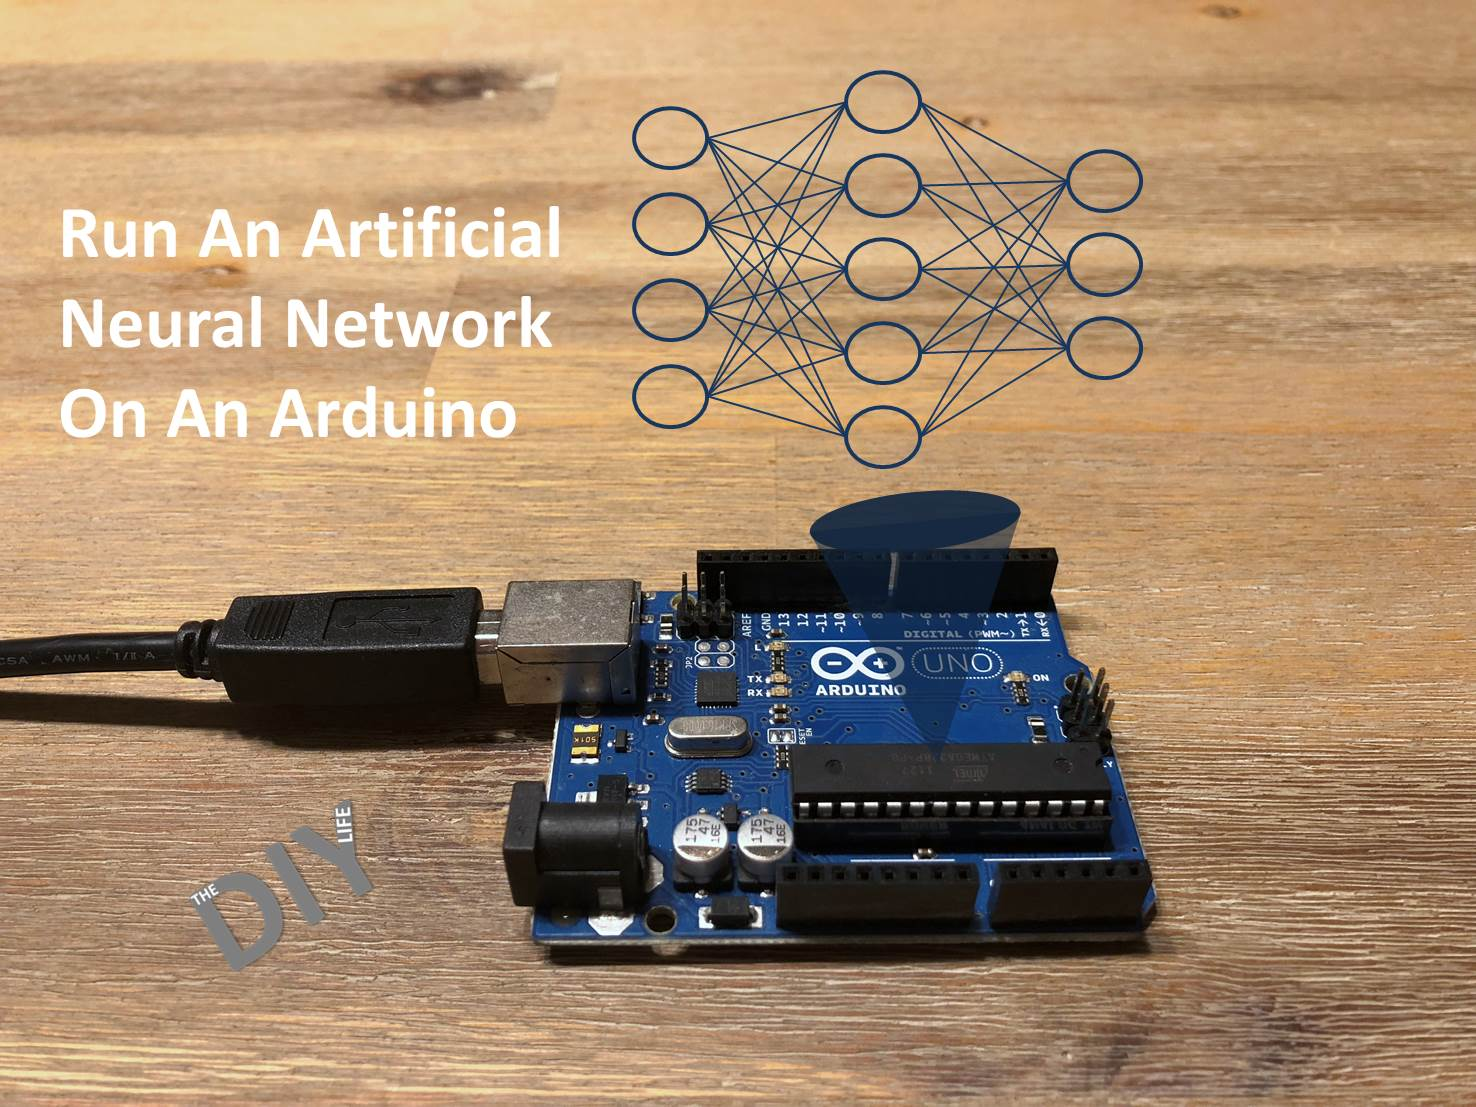 Running An Artifical Neural Network On An Arduino Uno